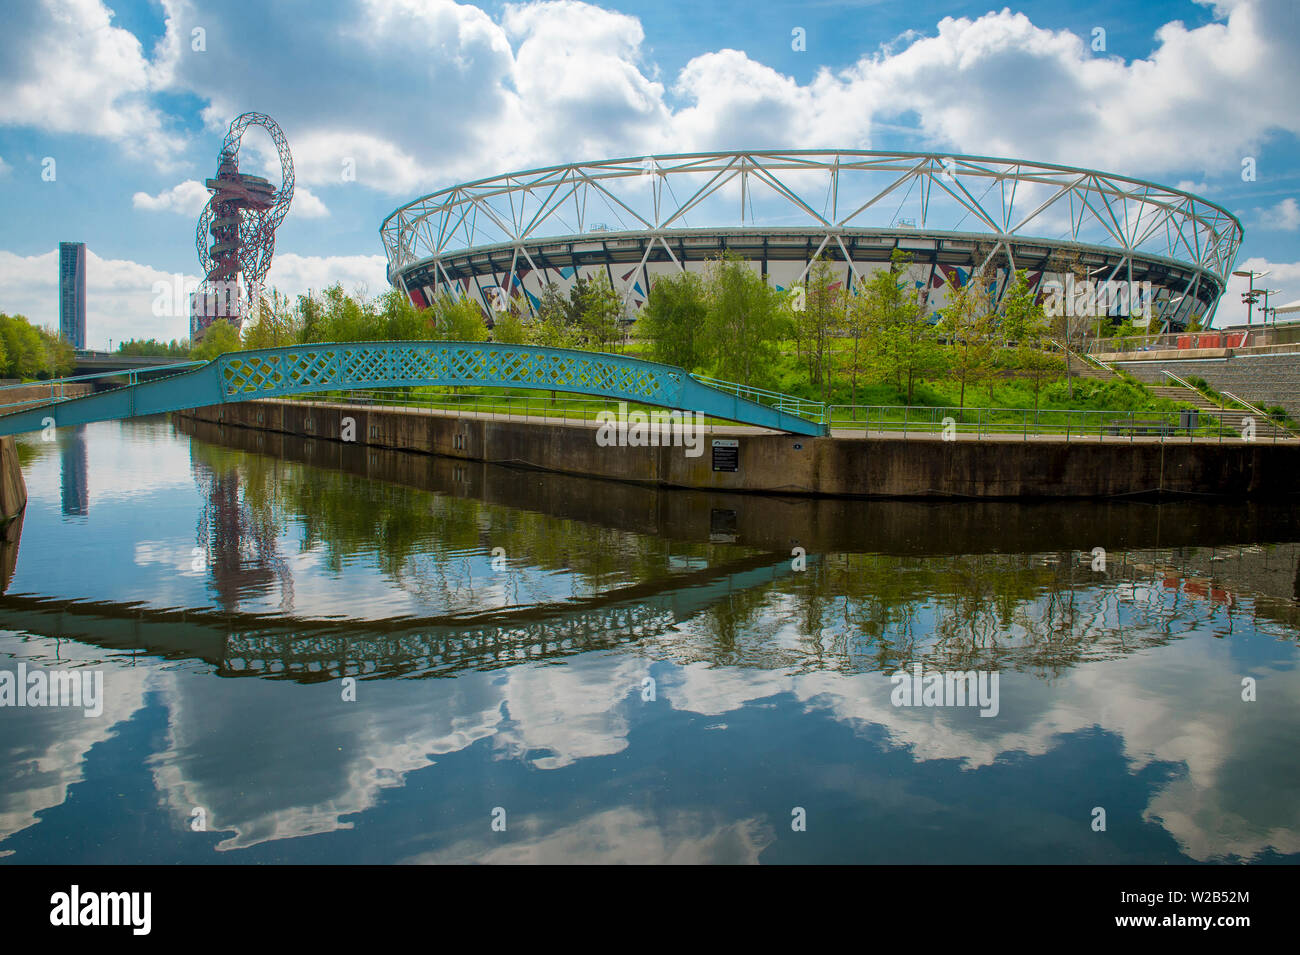 LONDON - APRIL 20, 2019: London Stadium reflects in one of the Bow Back Rivers, which were cleaned up when Stratford was revitalised for the  Olympics. Stock Photo